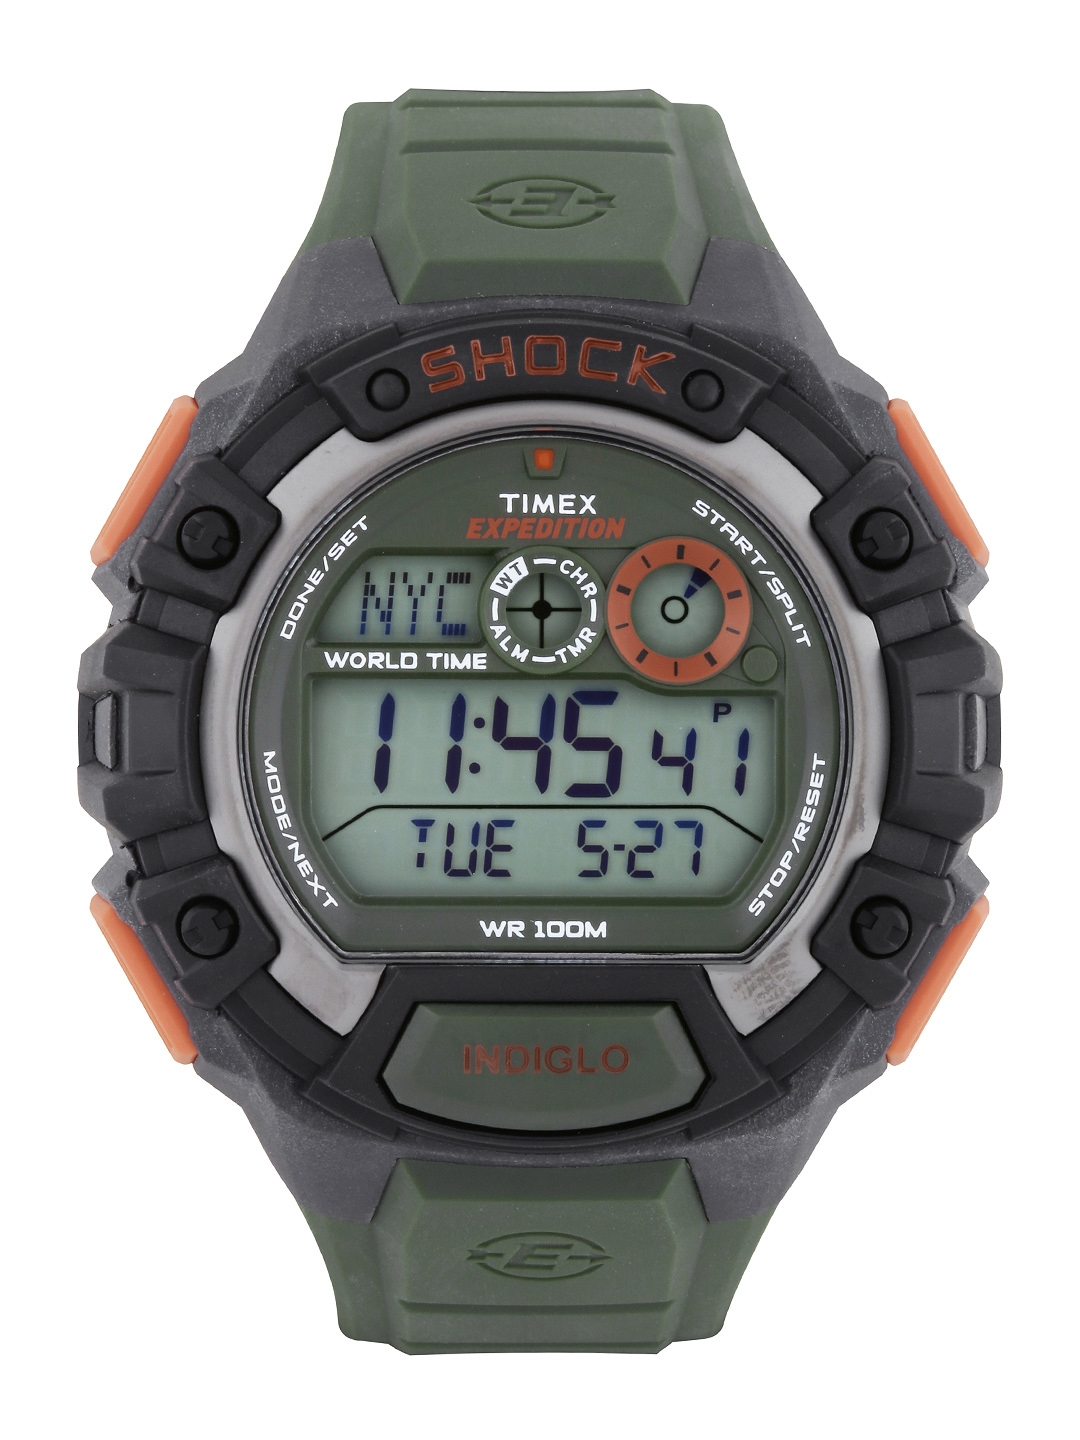 a4bc0b15f1d9 Buy Timex Expedition Men Olive Green Digital Watch T49972 - Watches ...